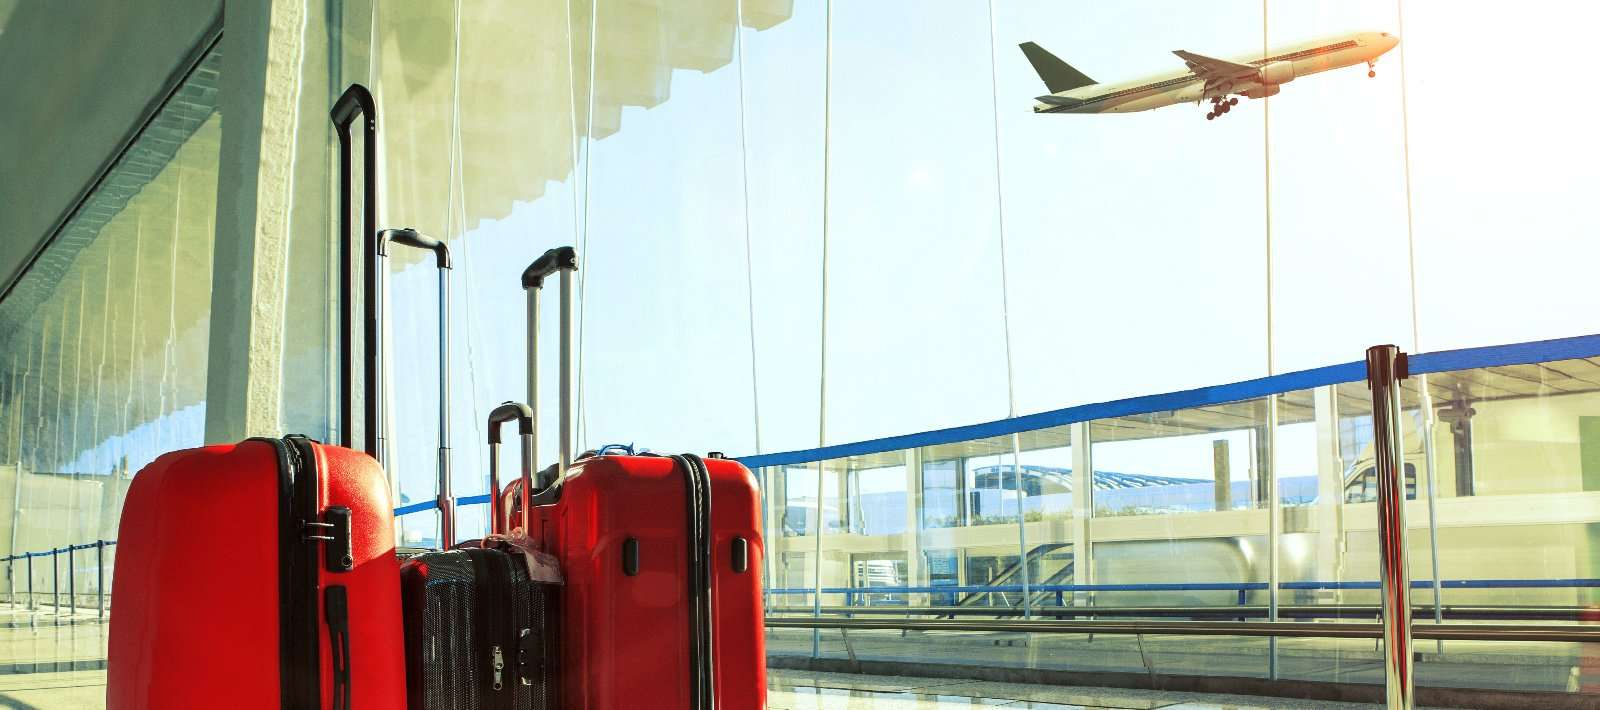 New Distribution Capability (NDC) in Air Travel: Airlines, GDSs, and